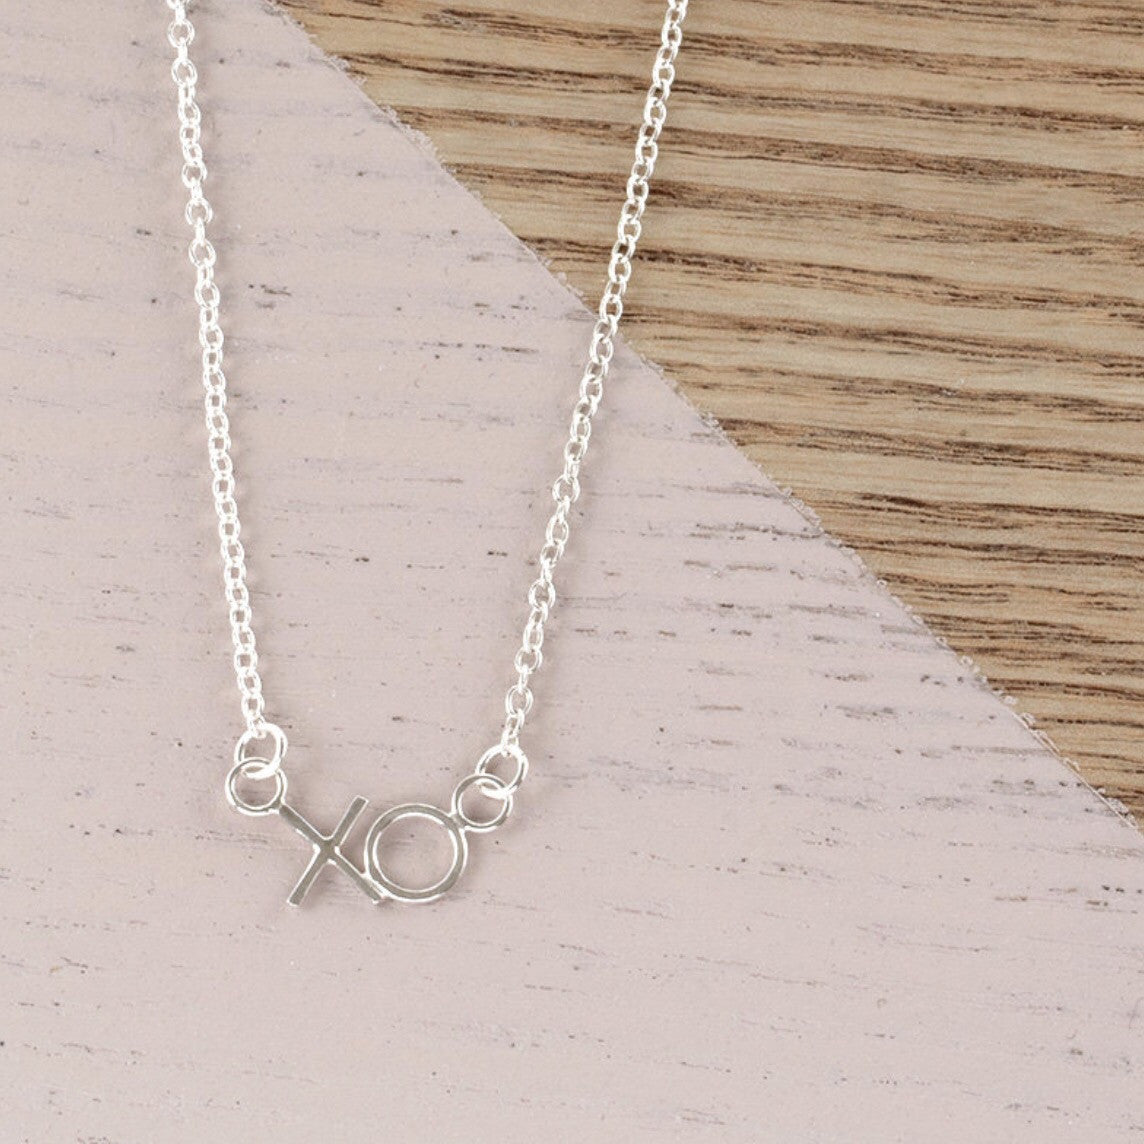 AYANA JEWELLERY MINI KISS + HUG NECKLACE - Daisy Chain Store